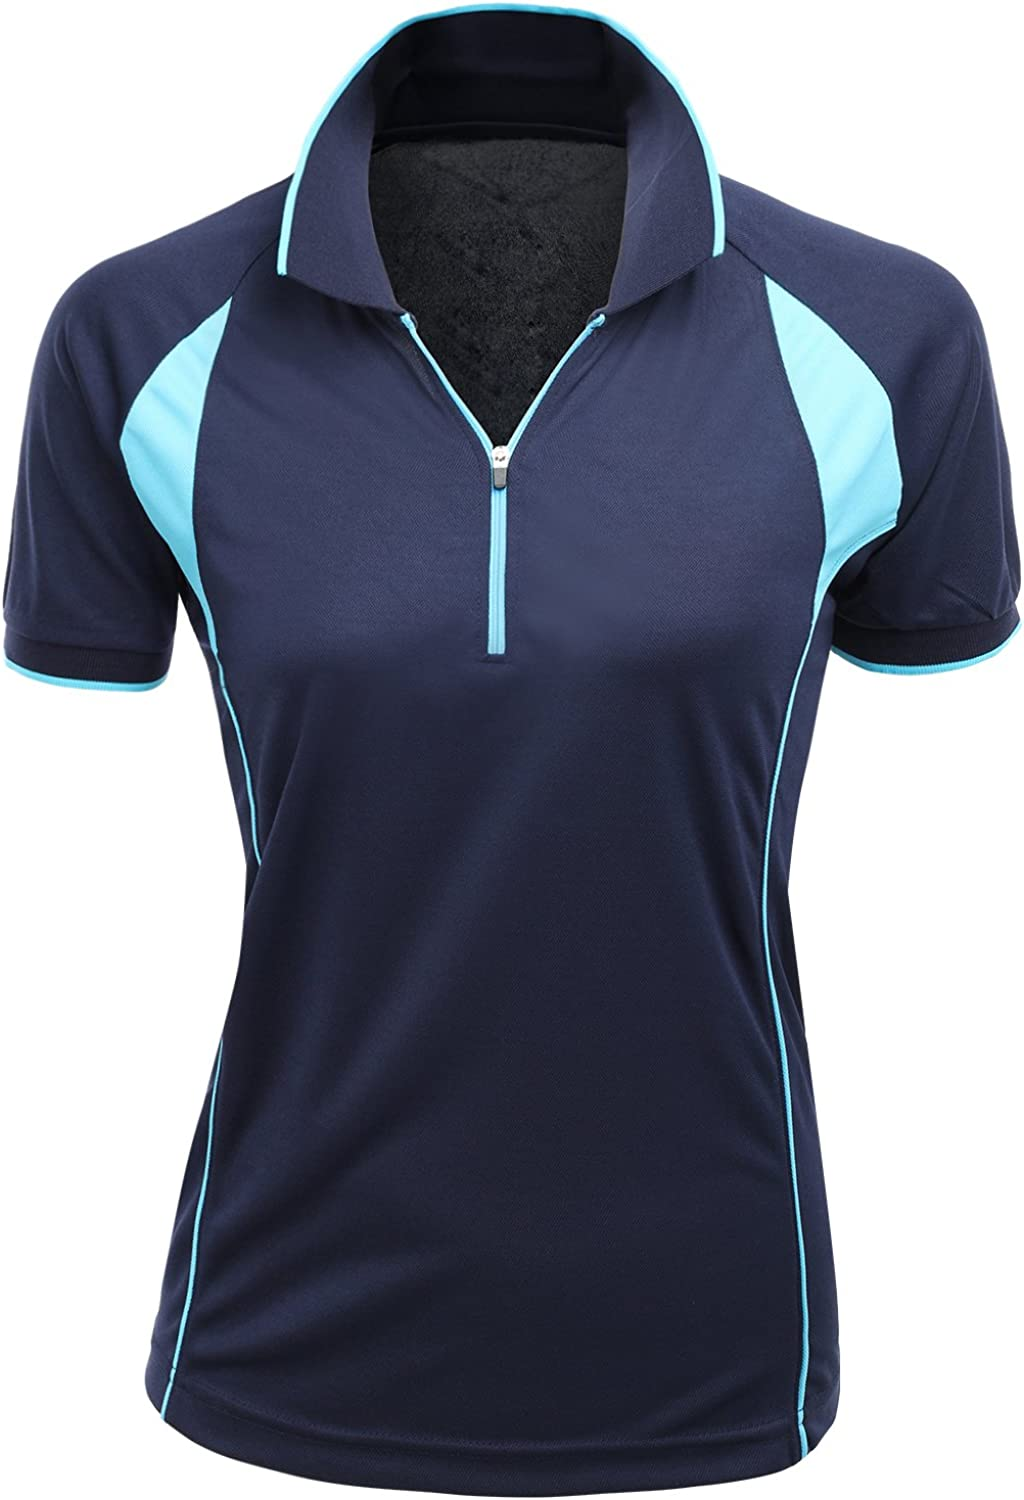 Xpril Women's Coolmax Cash special price Fabric Sporty Short Sleeve Feel Functional Fees free